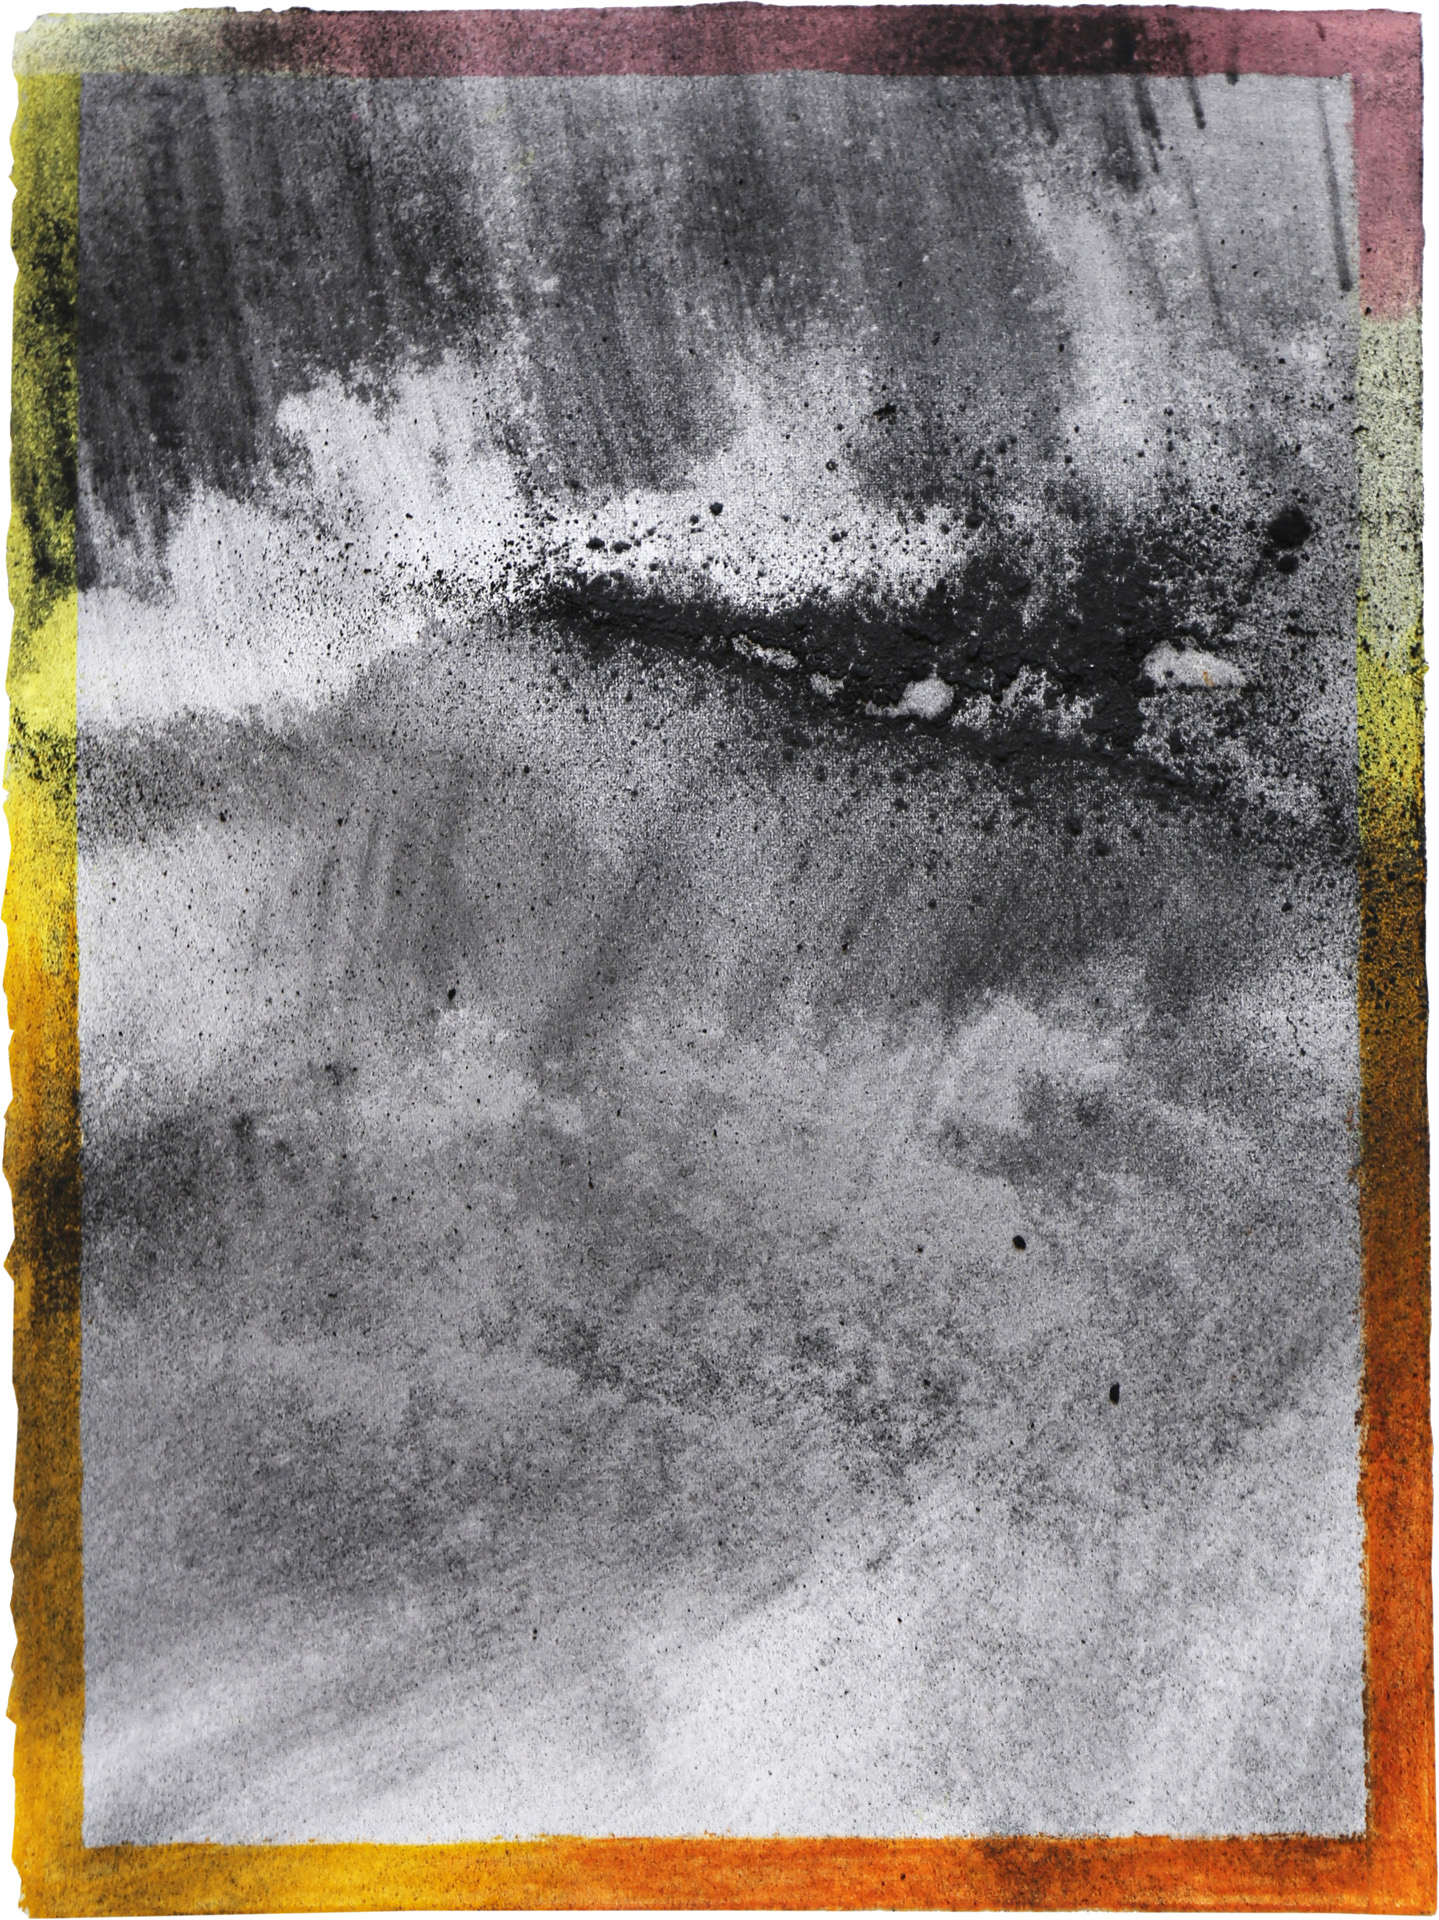 Nora Mona Bach – Tension I, 2020, pastel, charcoal on paper, 39 cm x 29 cm